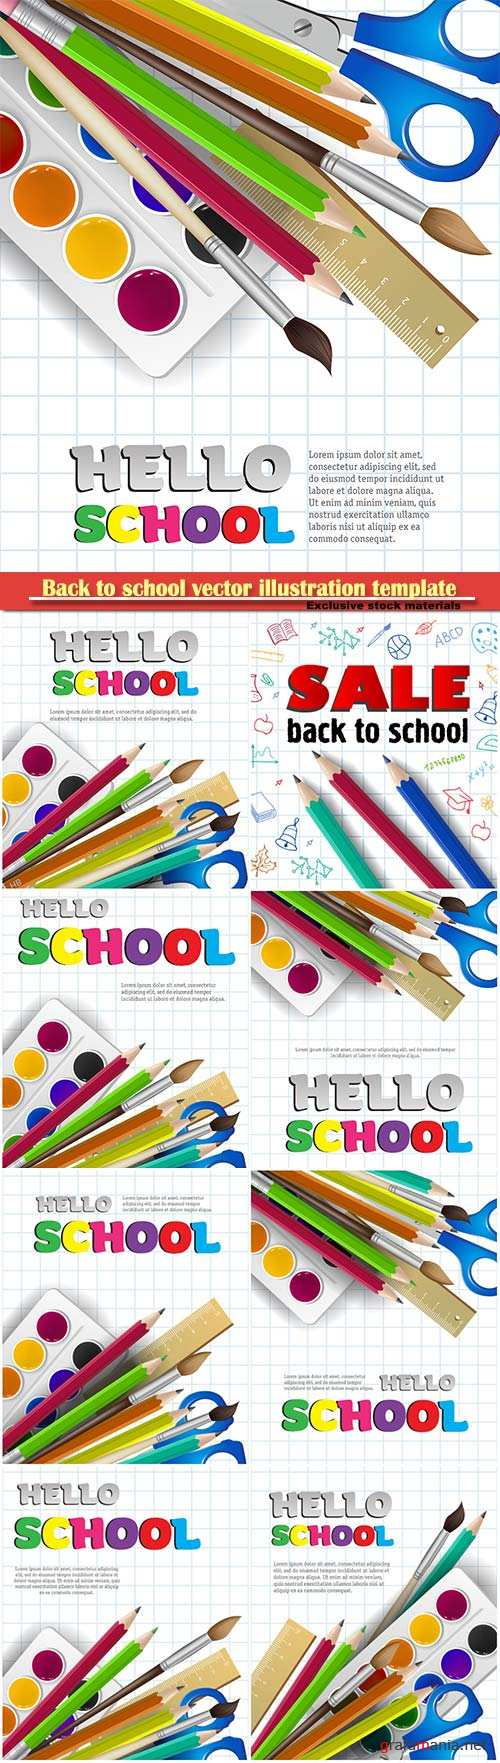 Back to school vector illustration template # 7